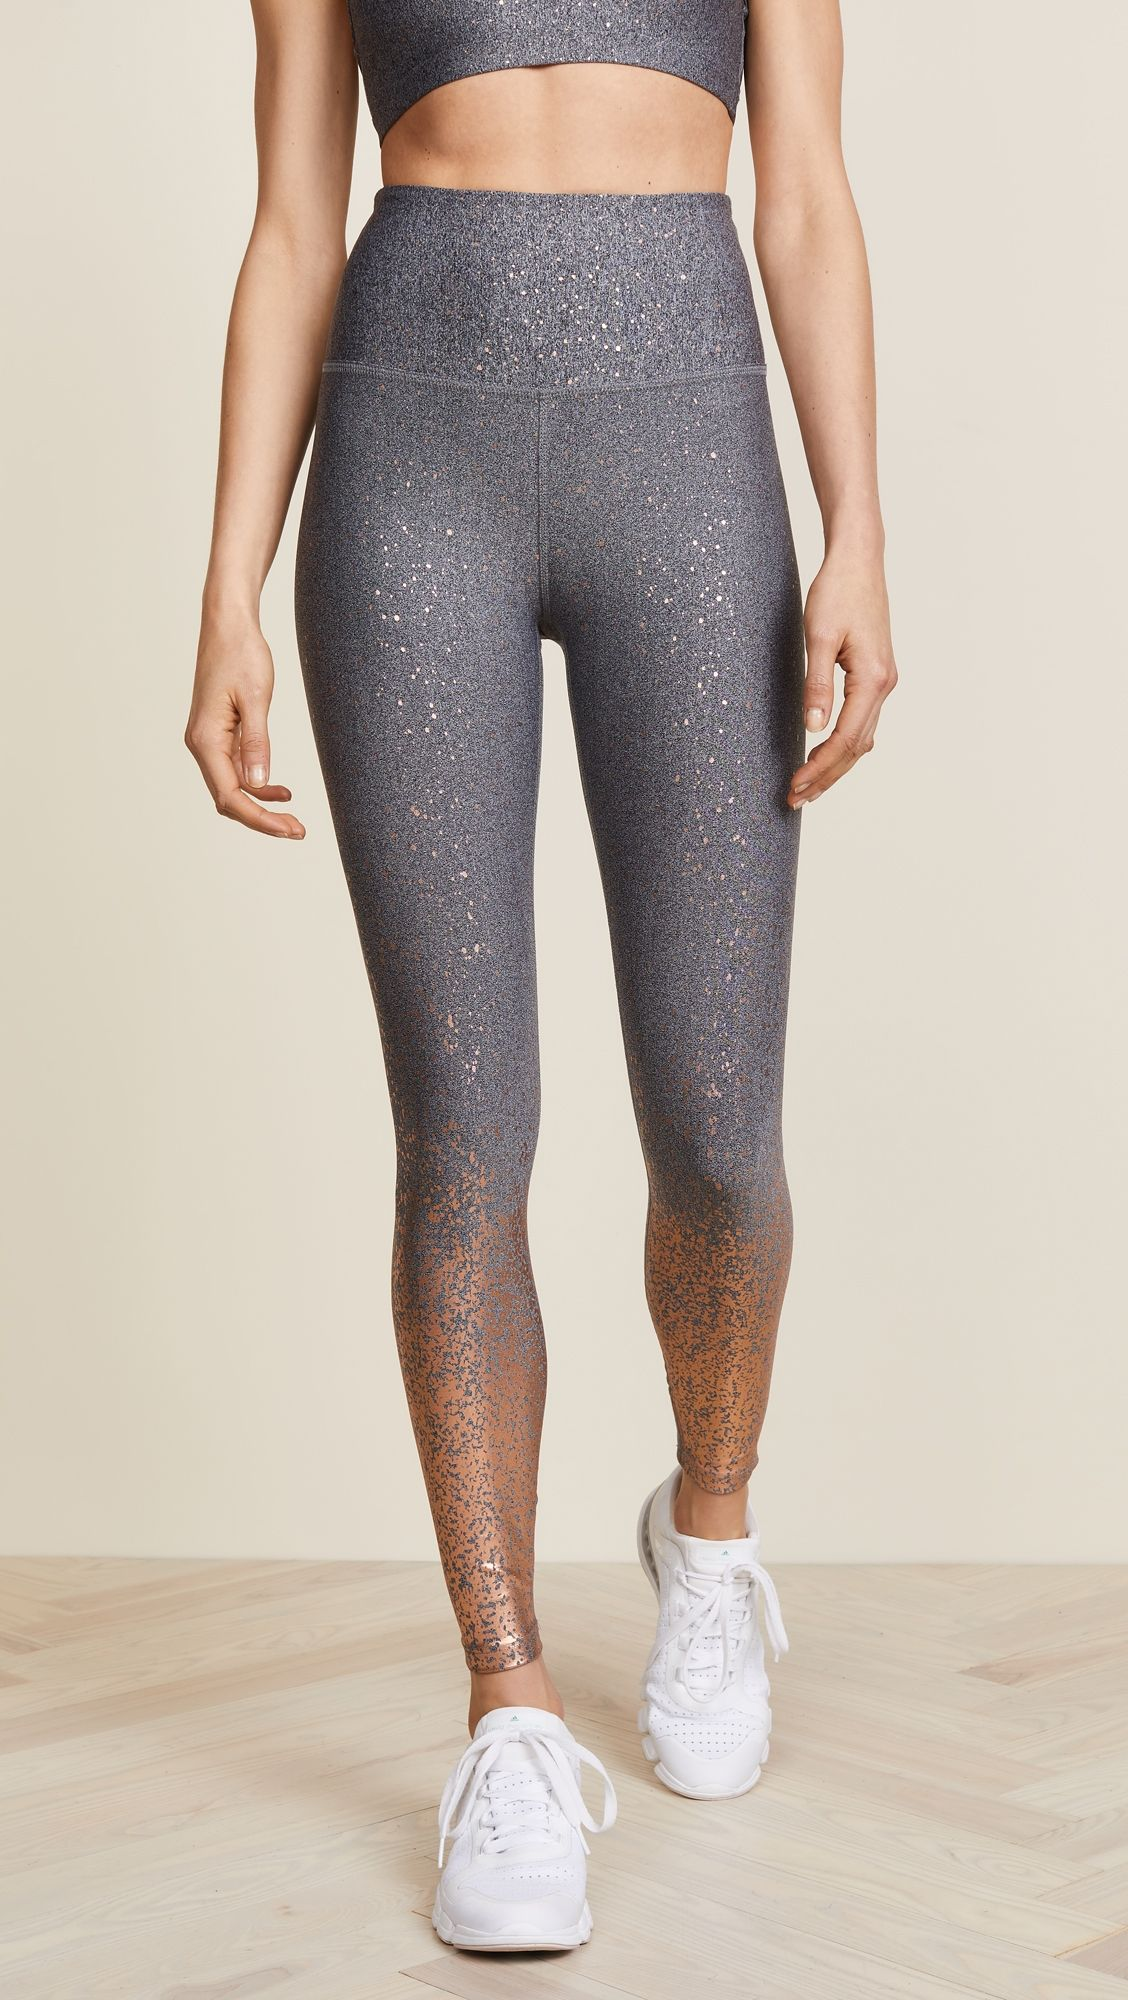 b68714962314e Beyond Yoga Alloy Ombre High Waisted Leggings | Products | Pinterest ...